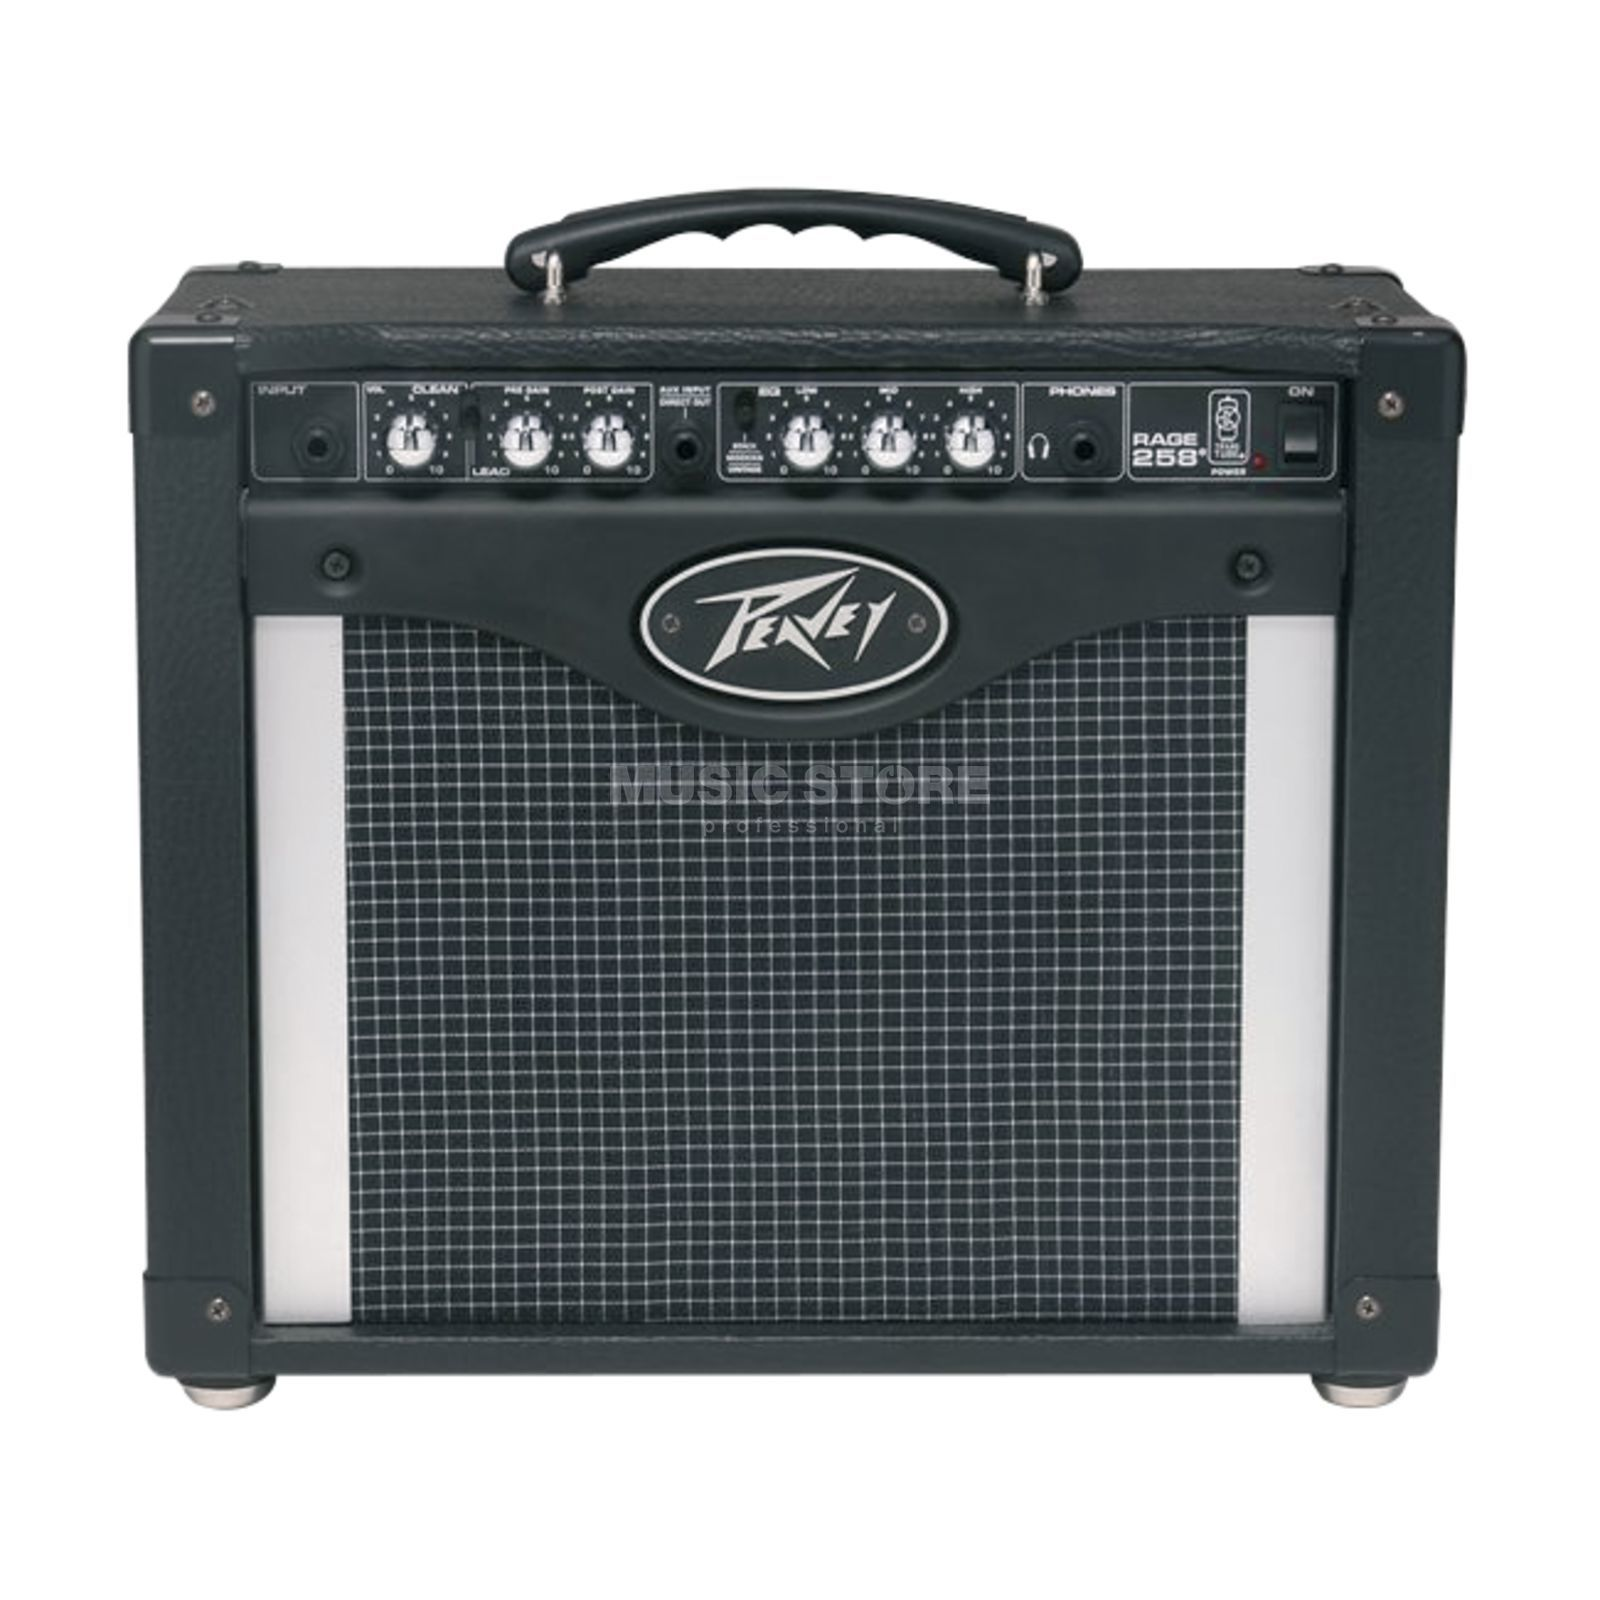 Peavey Rage 258 Guitar Amp Combo    Product Image